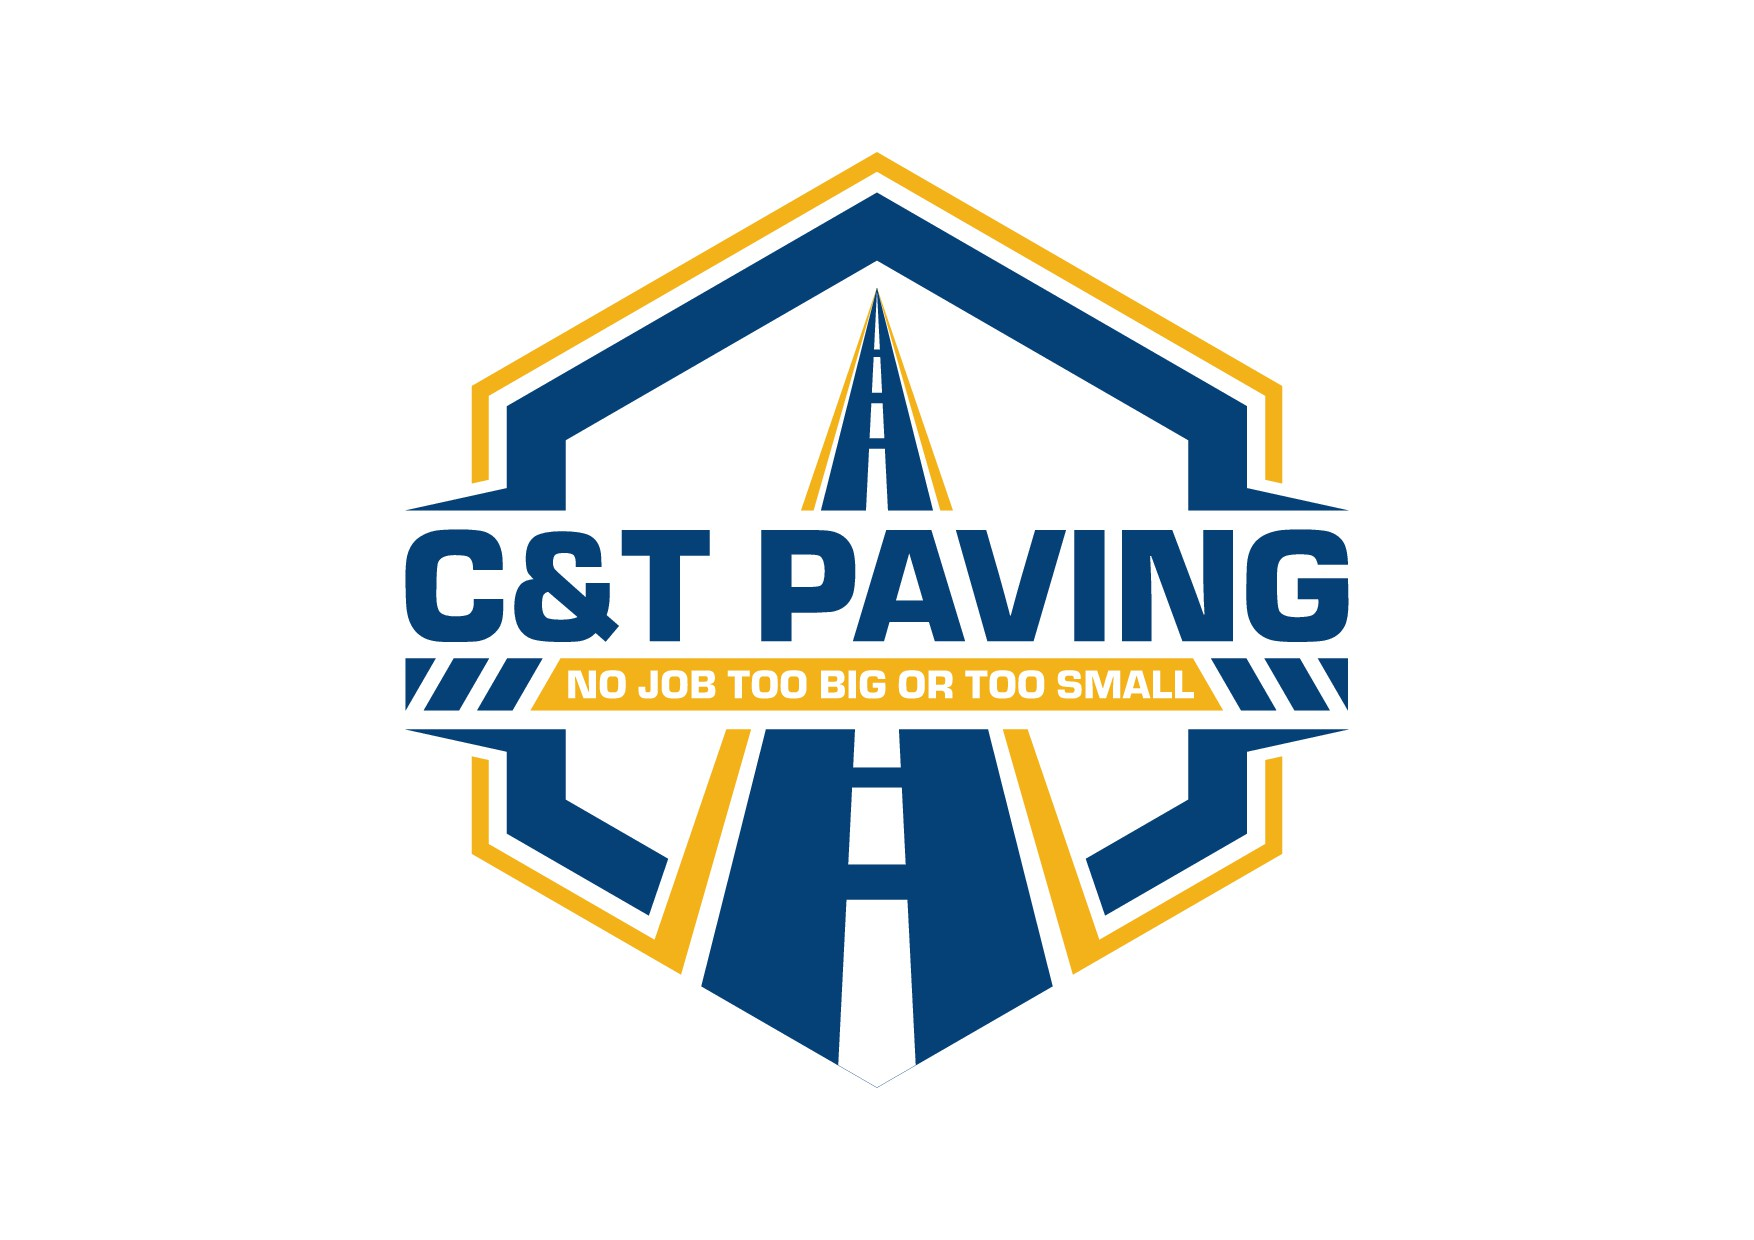 Logo for asphalt paving company. Would like a road in the design. Like blues and yellows.